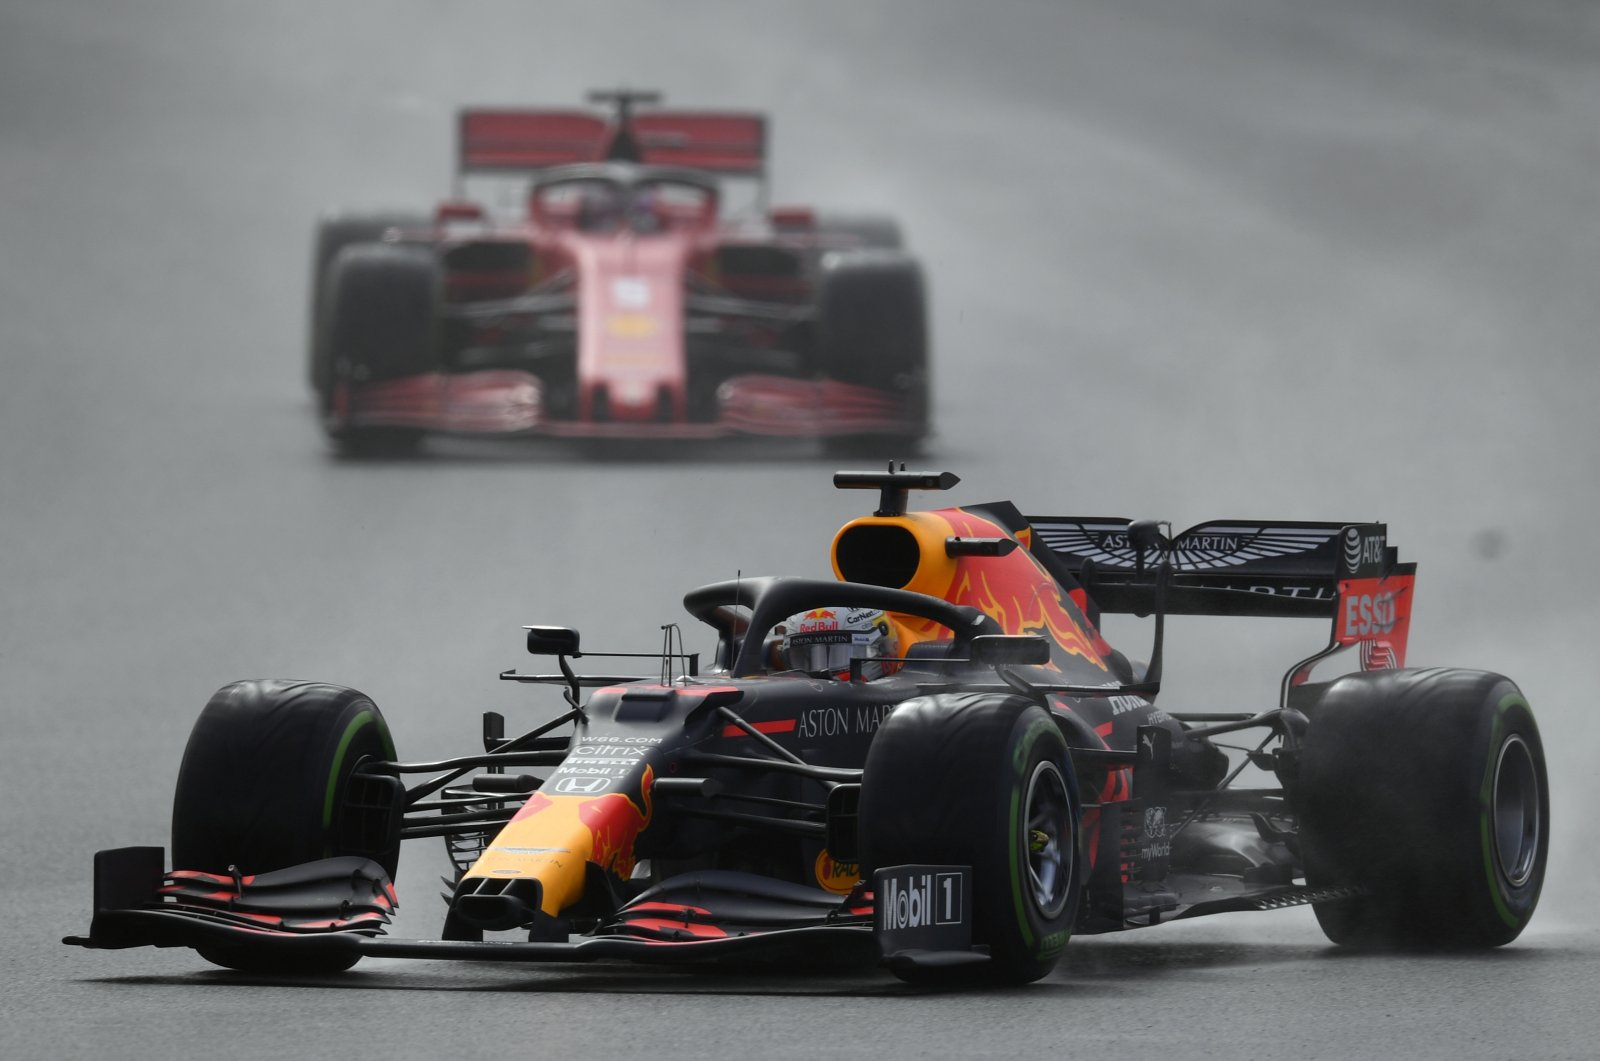 Red Bull driver Max Verstappen steers his car during the Turkish Formula One Grand Prix at the Istanbul Park circuit racetrack in Istanbul, Turkey, Nov. 15, 2020. (AP Photo)